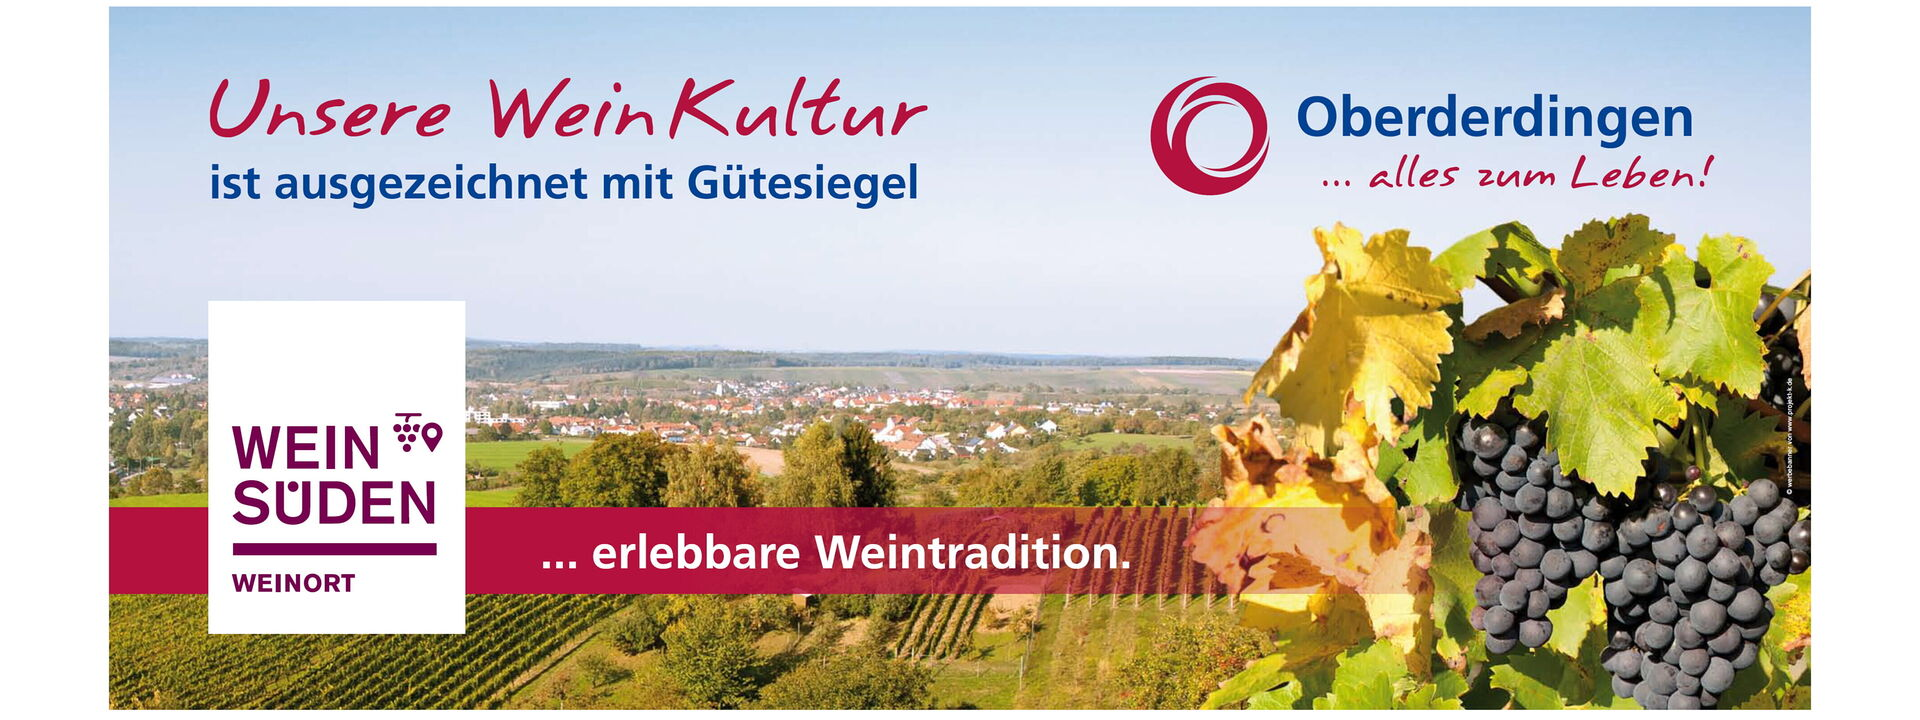 Weinregion mit Weintradition in Oberderdingen